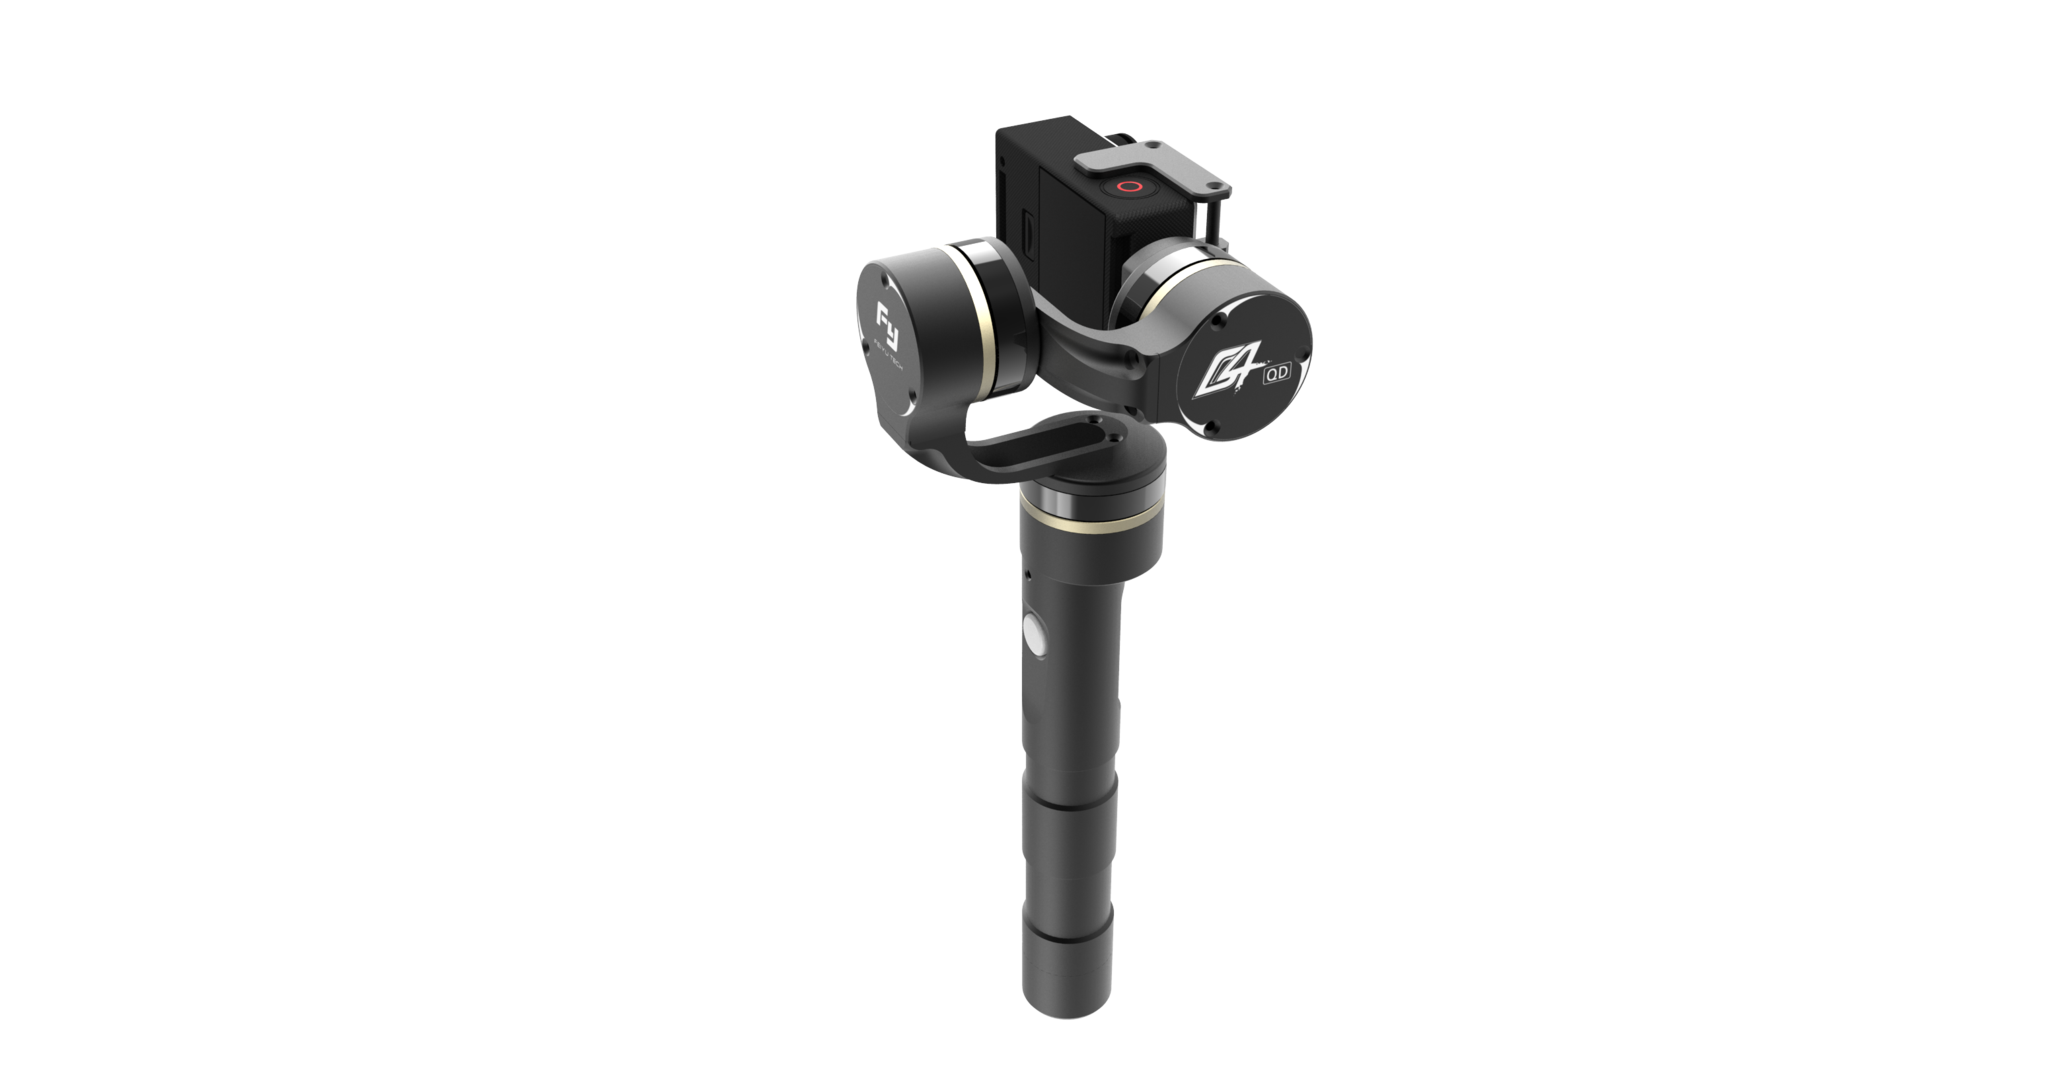 Feiyu G4 3 Axis Handheld QD Gimbal Rental (per day)